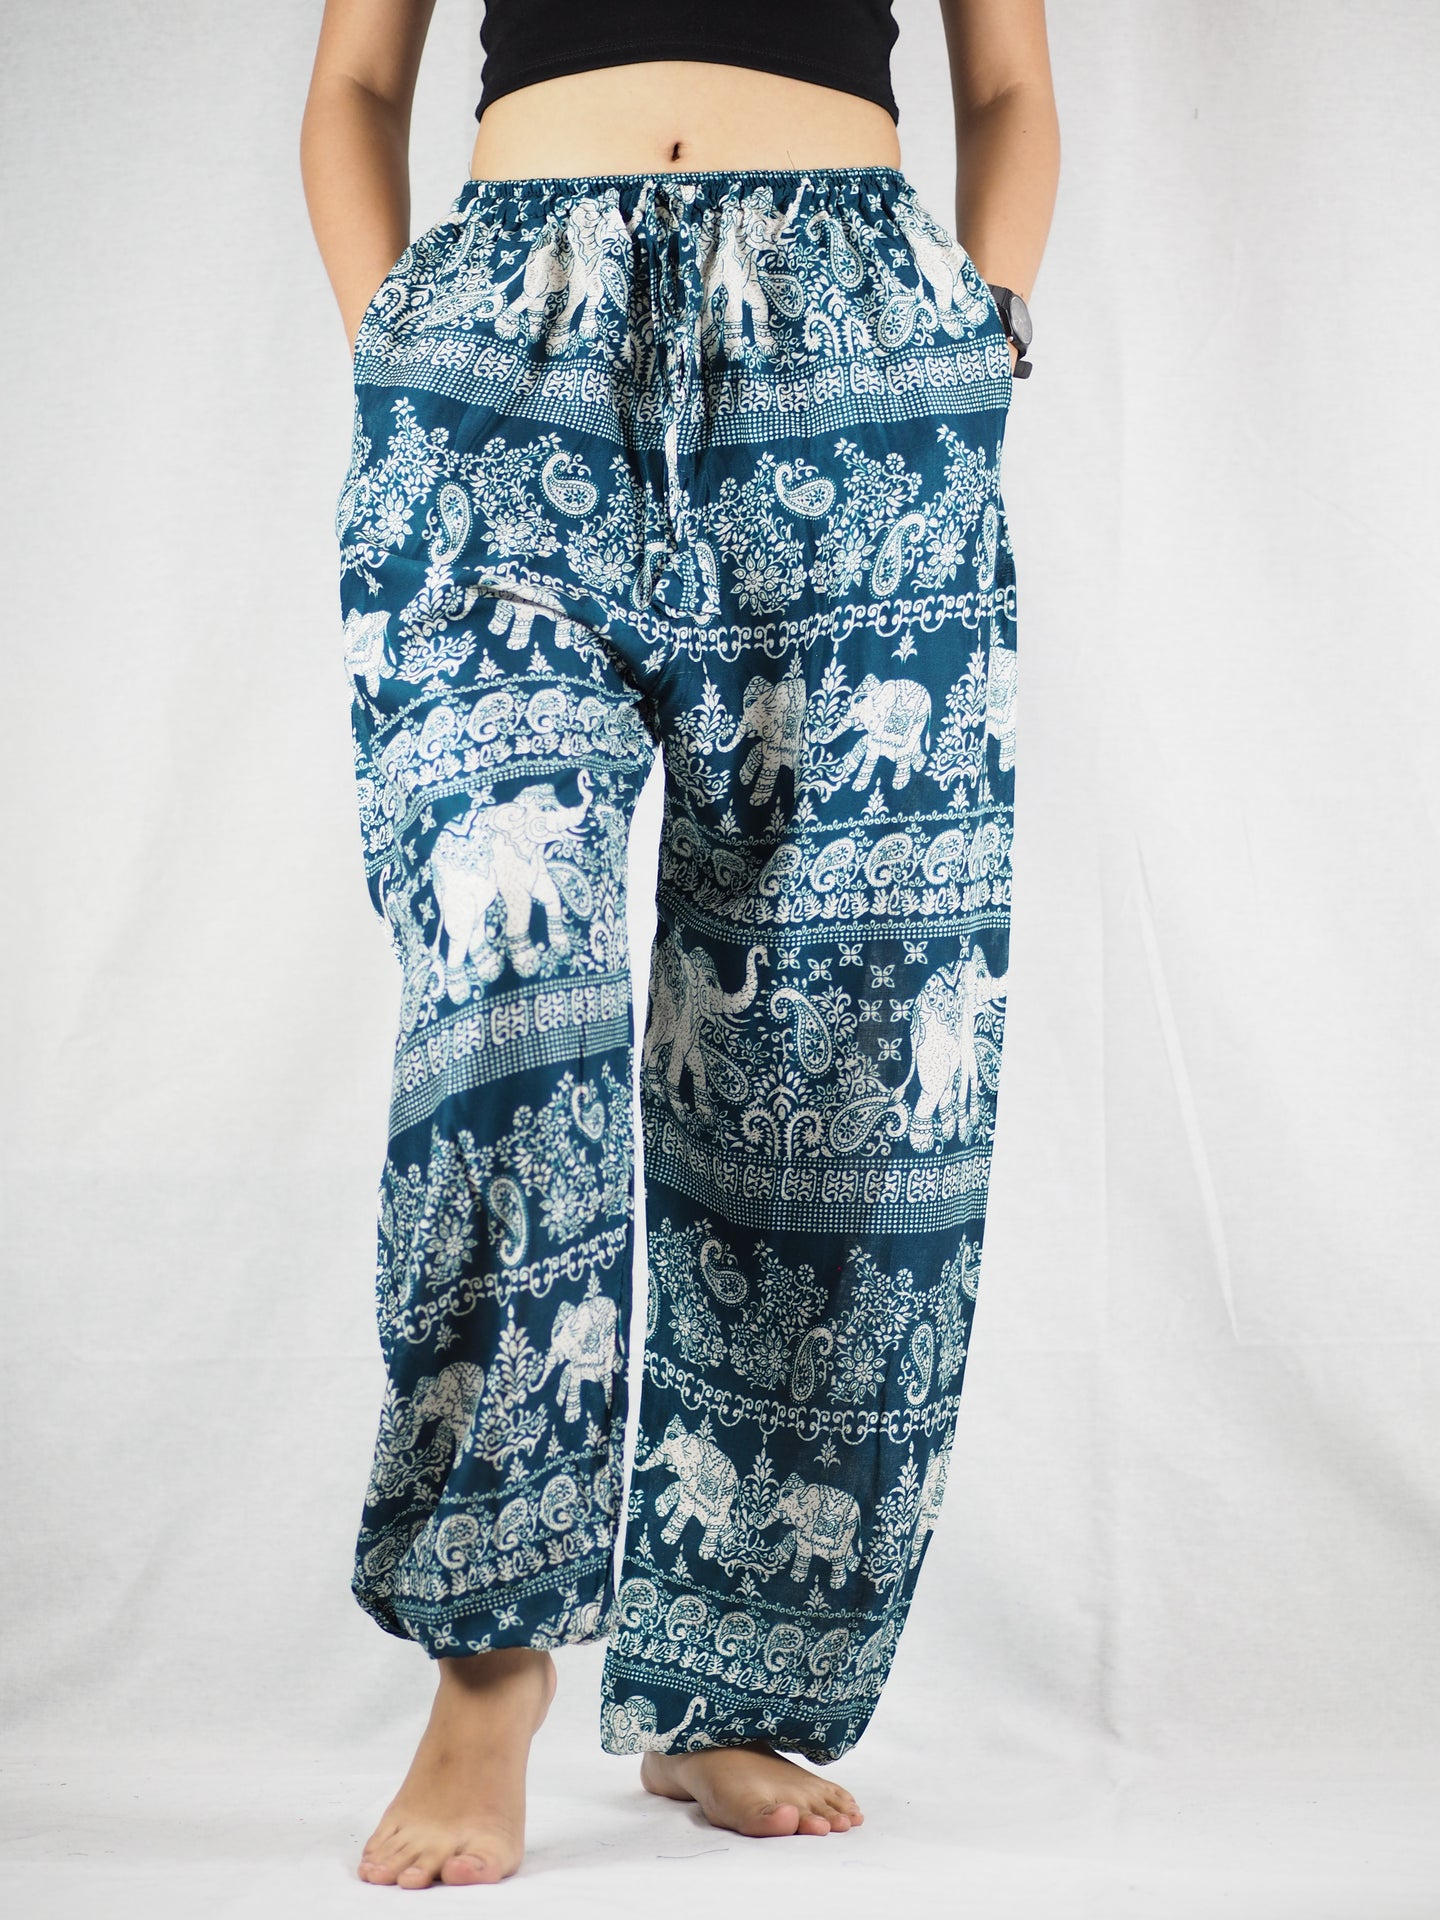 Paisley elephants Unisex Drawstring Genie Pants in Green PP0110 020022 05